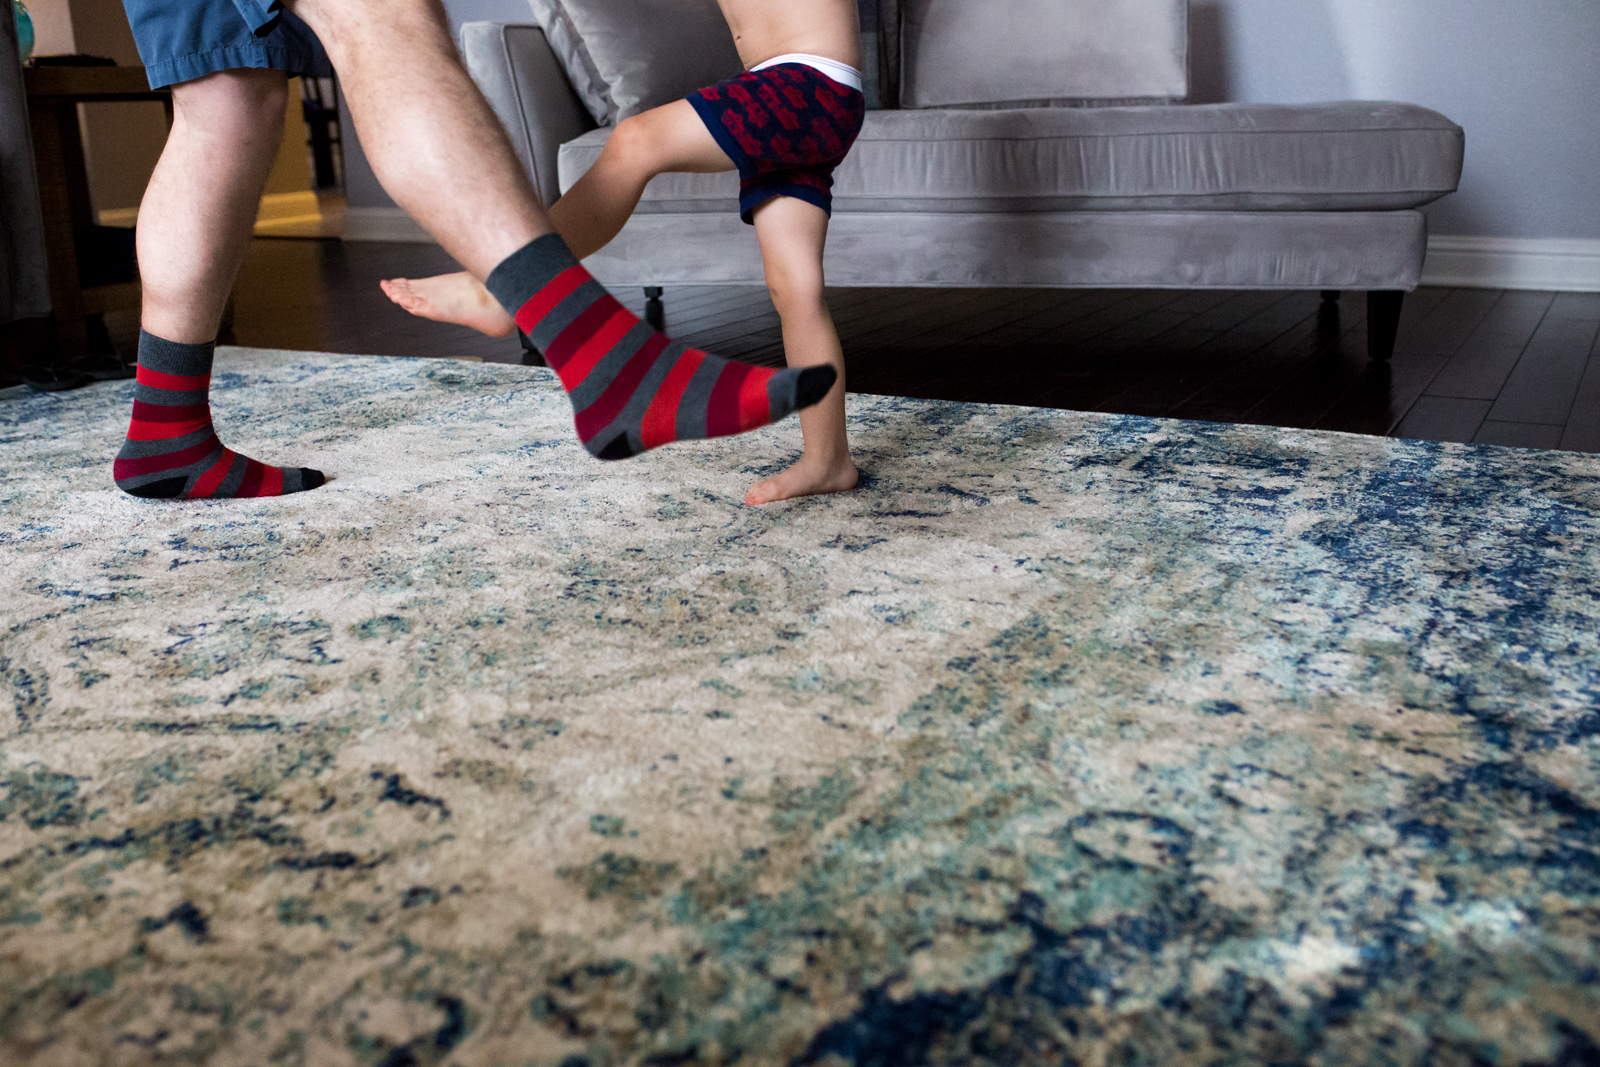 Lawren Rose Photography takes a minimalist photo of a dad and son dancing where dad is wearing funky socks on the living room floor in mckinney texas